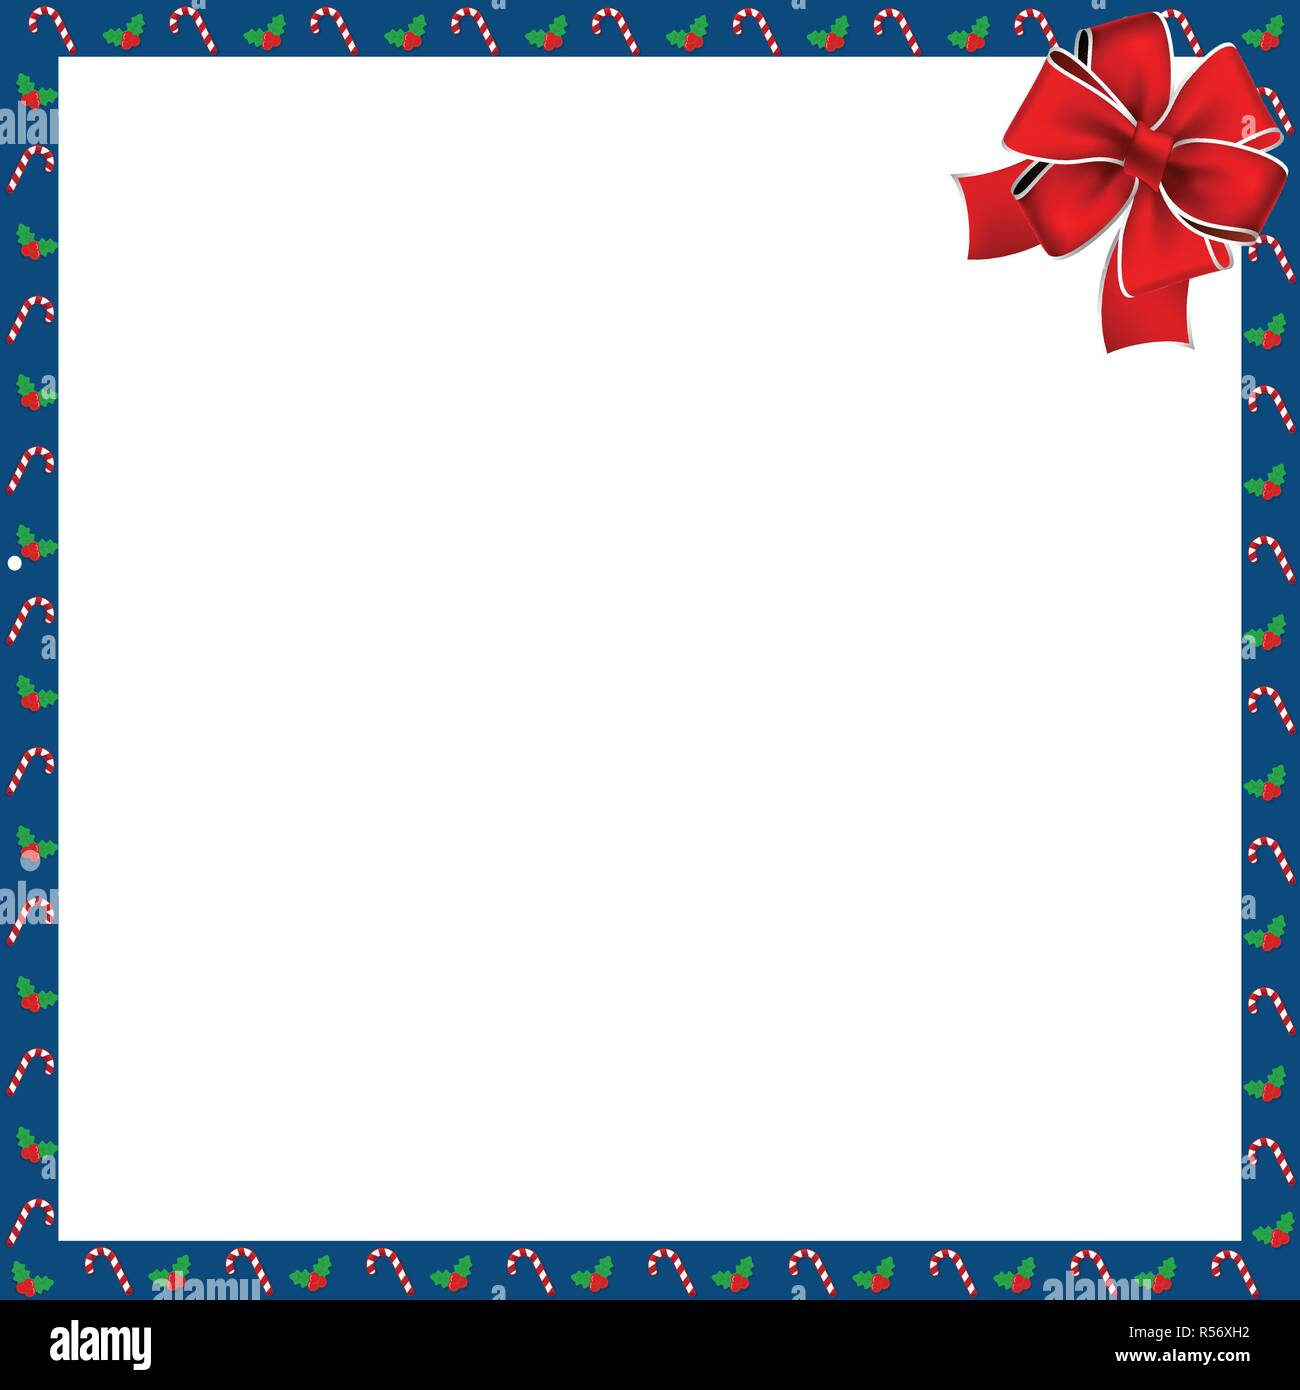 cute christmas or new year border with xmas candy cane and berries pattern and red festive bow on white background vector square template photo fram